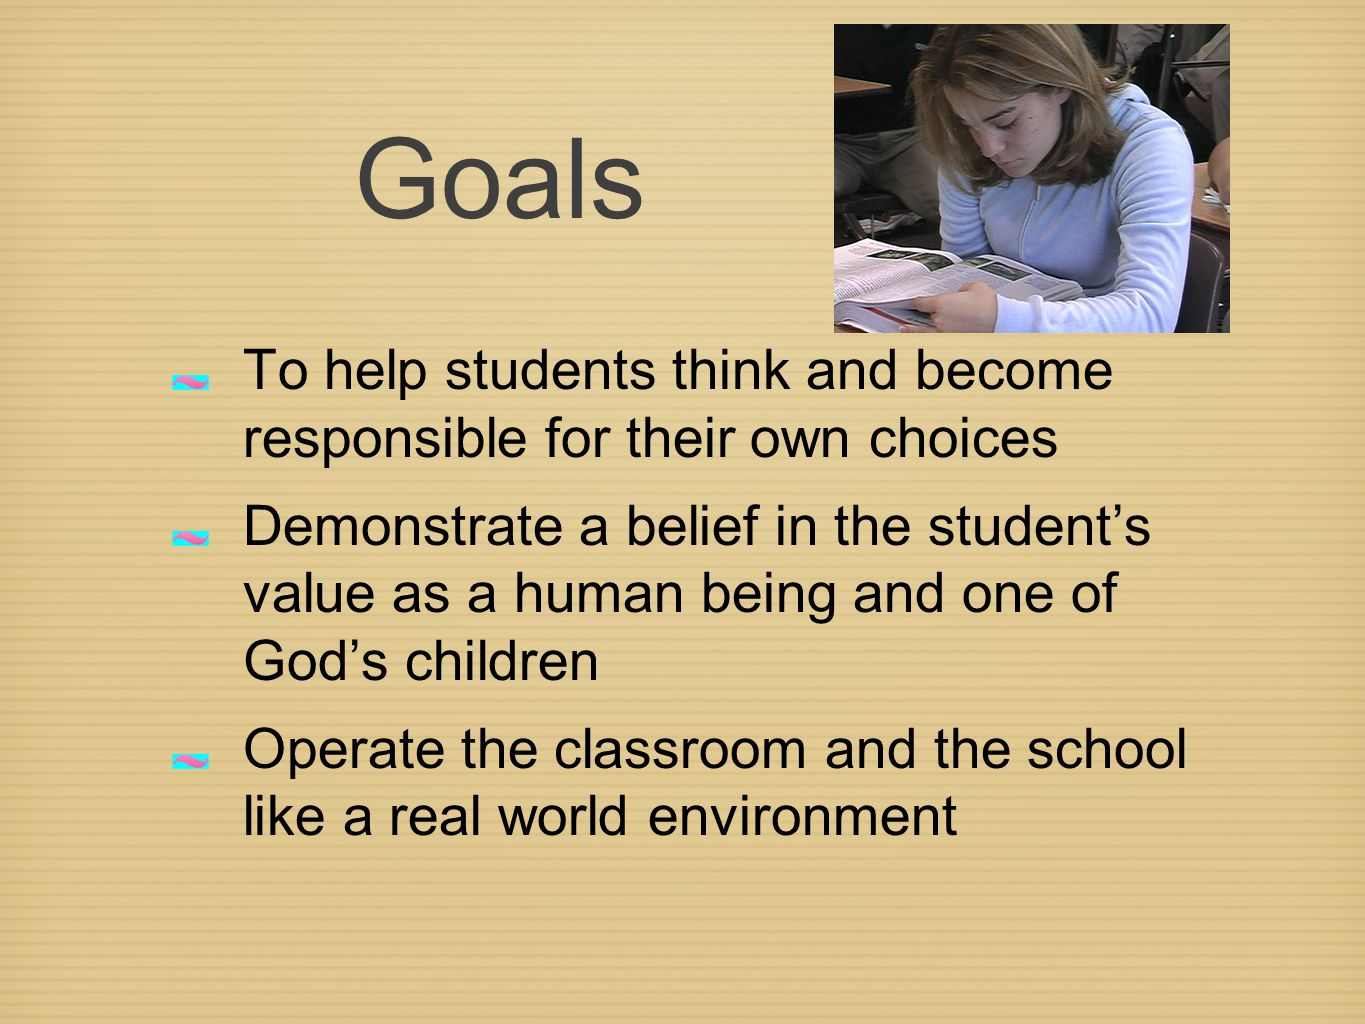 Goals To help students think and become responsible for their own choices Demonstrate a belief in the student's value as a human being and one of God's children Operate the classroom and the school like a real world environment